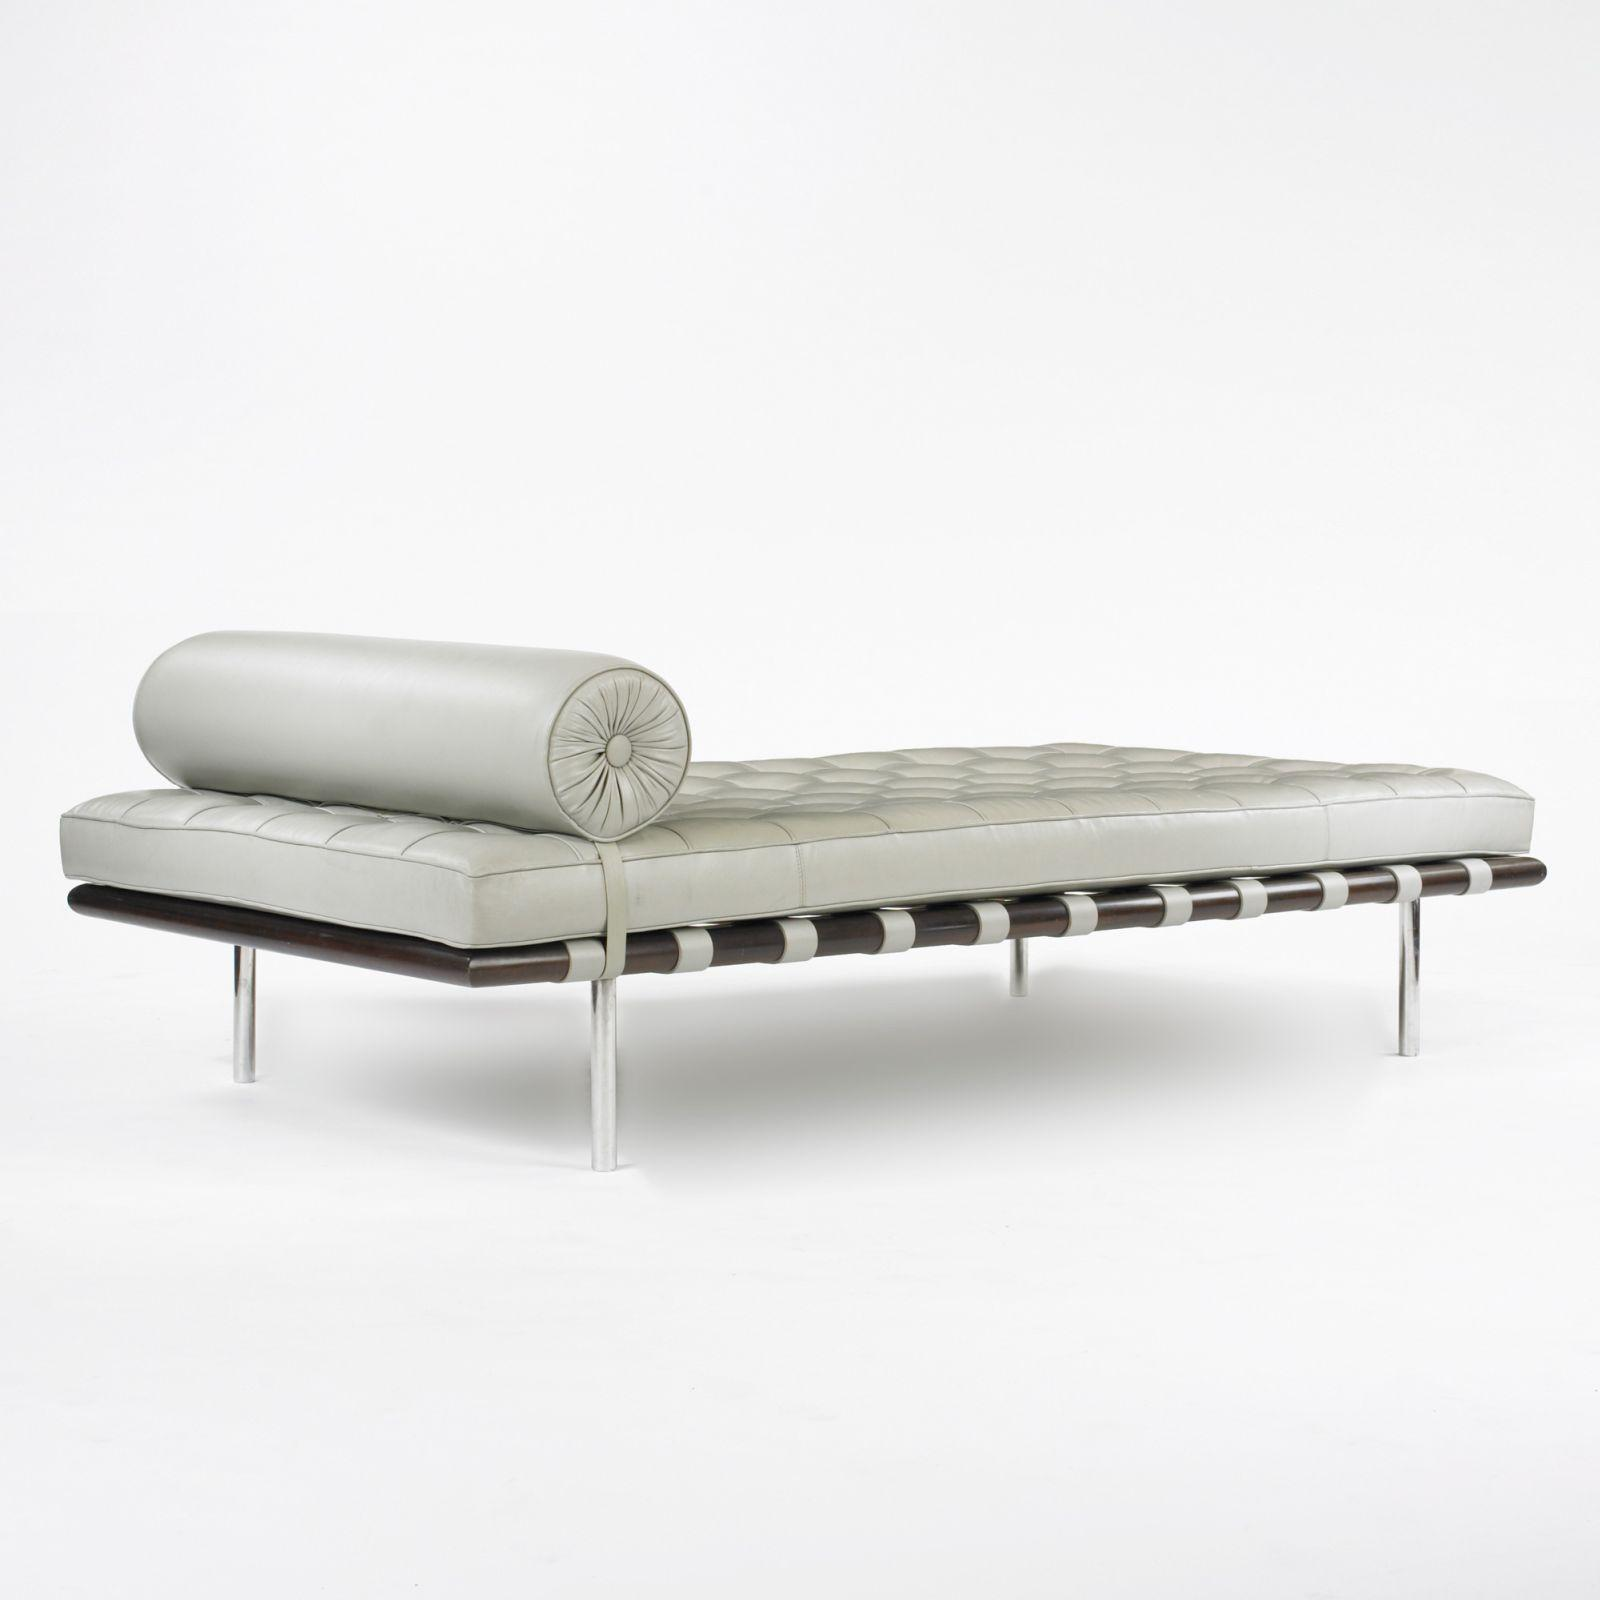 Barcelona Daybed Ludwig Mies Van Der Rohe Barcelona Daybed